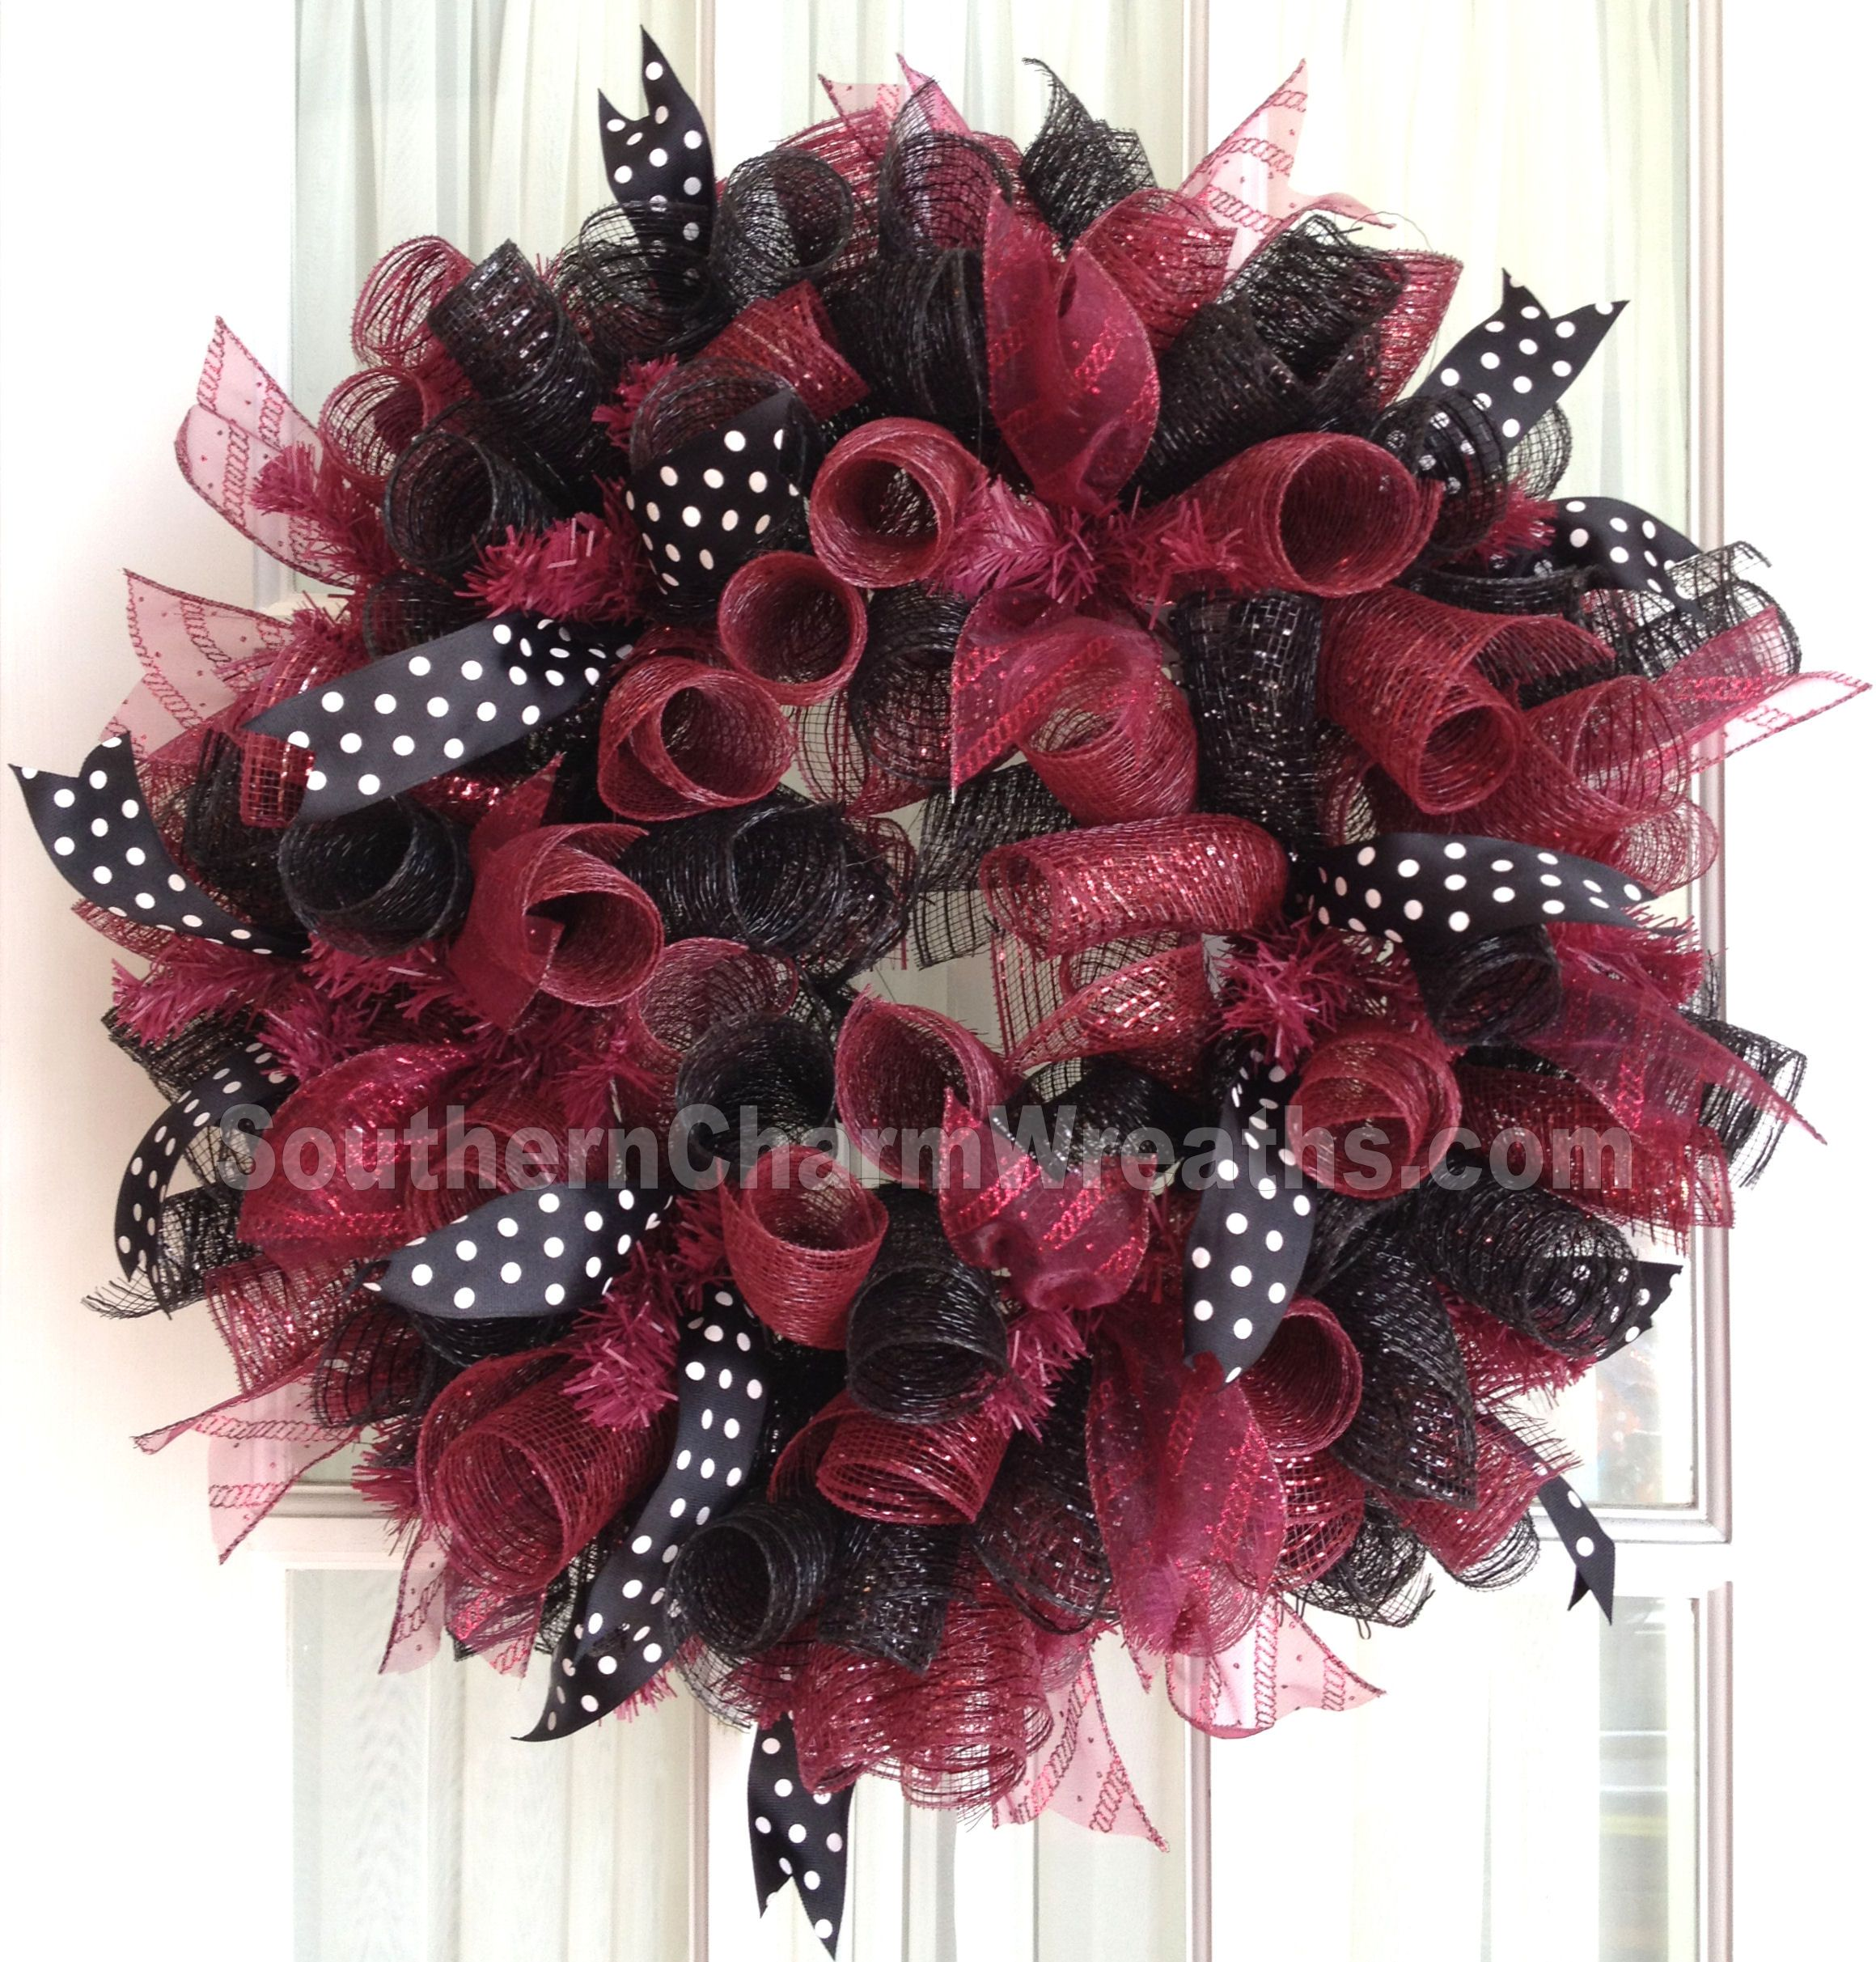 Geo mesh wreath form - University of sc gamecock deco mesh dorm wreath garnet black tailgating wreath